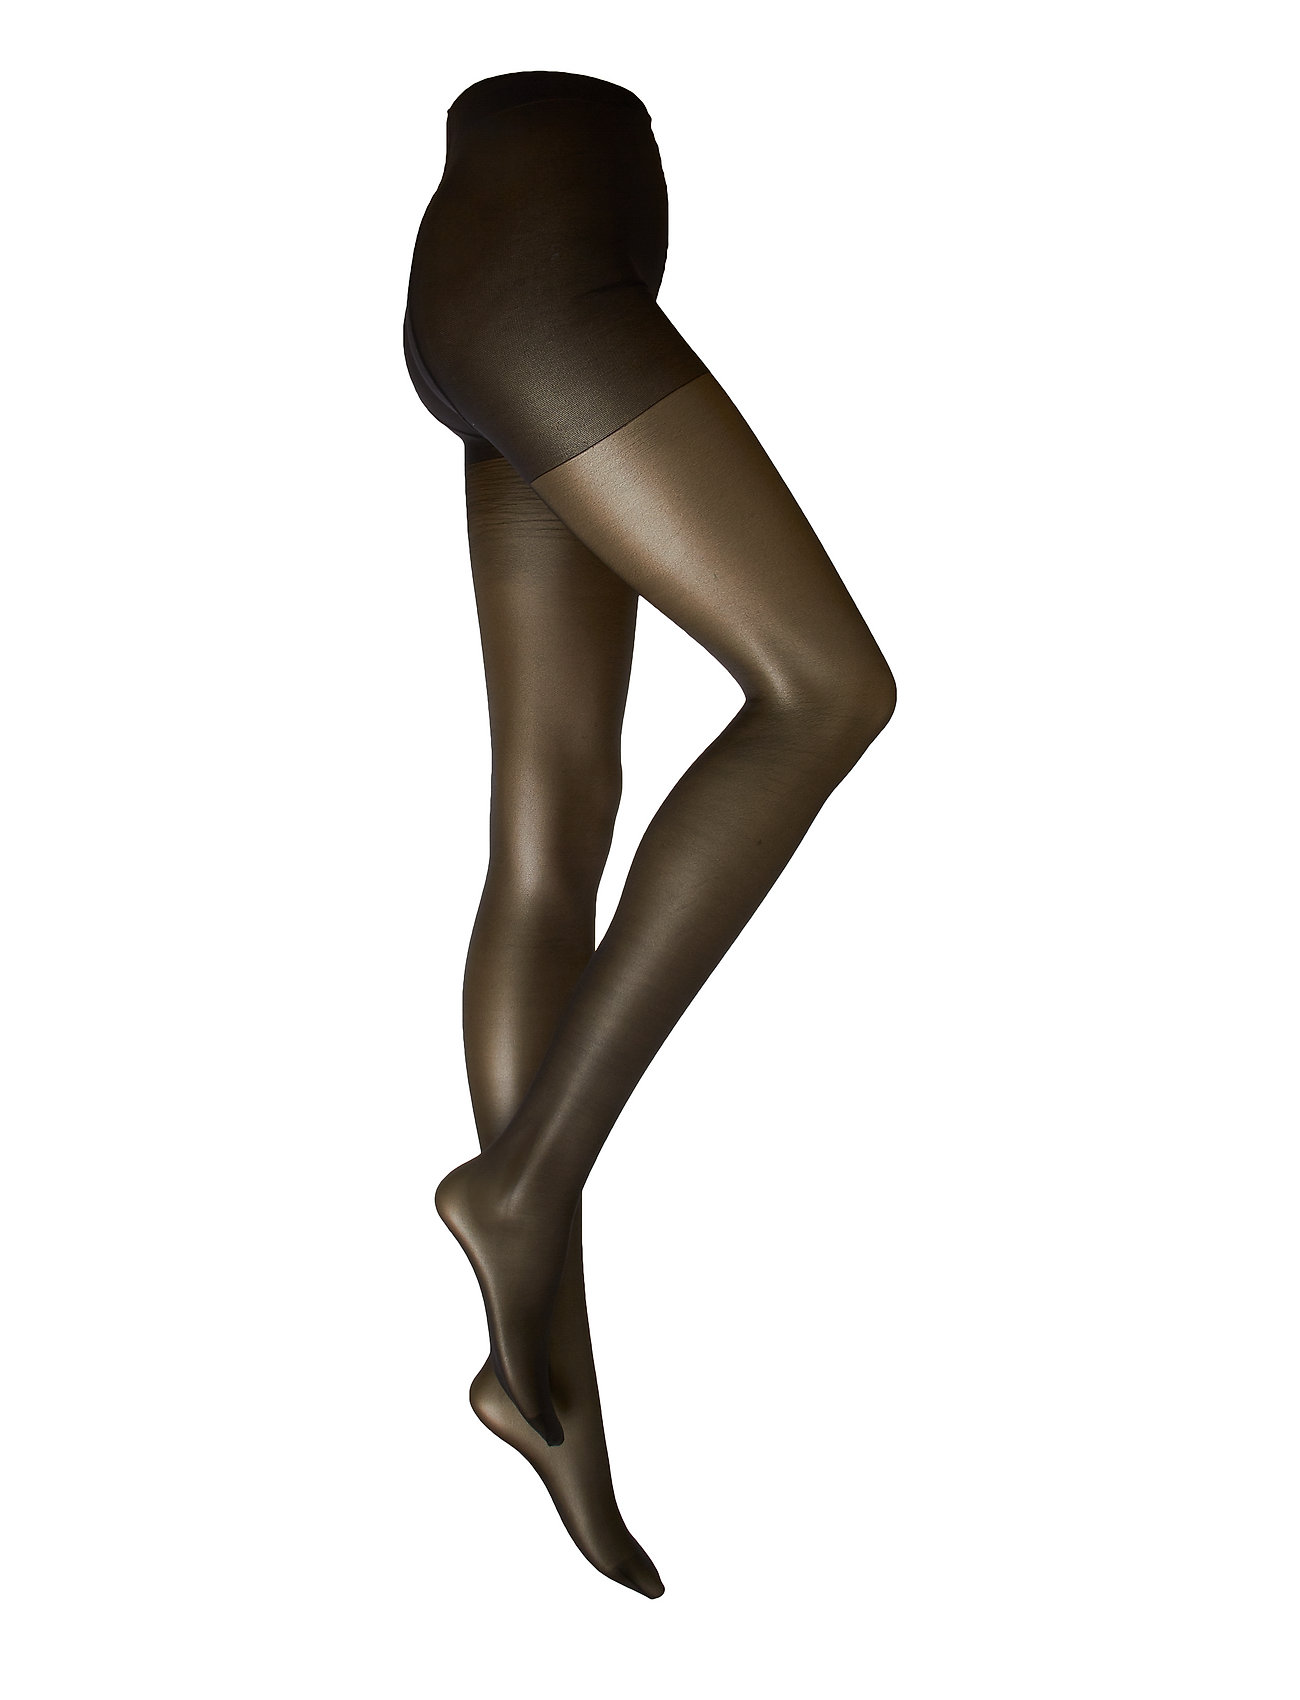 Dblack Tights Look Qs Silk 20 Decoy Tl1cFJK